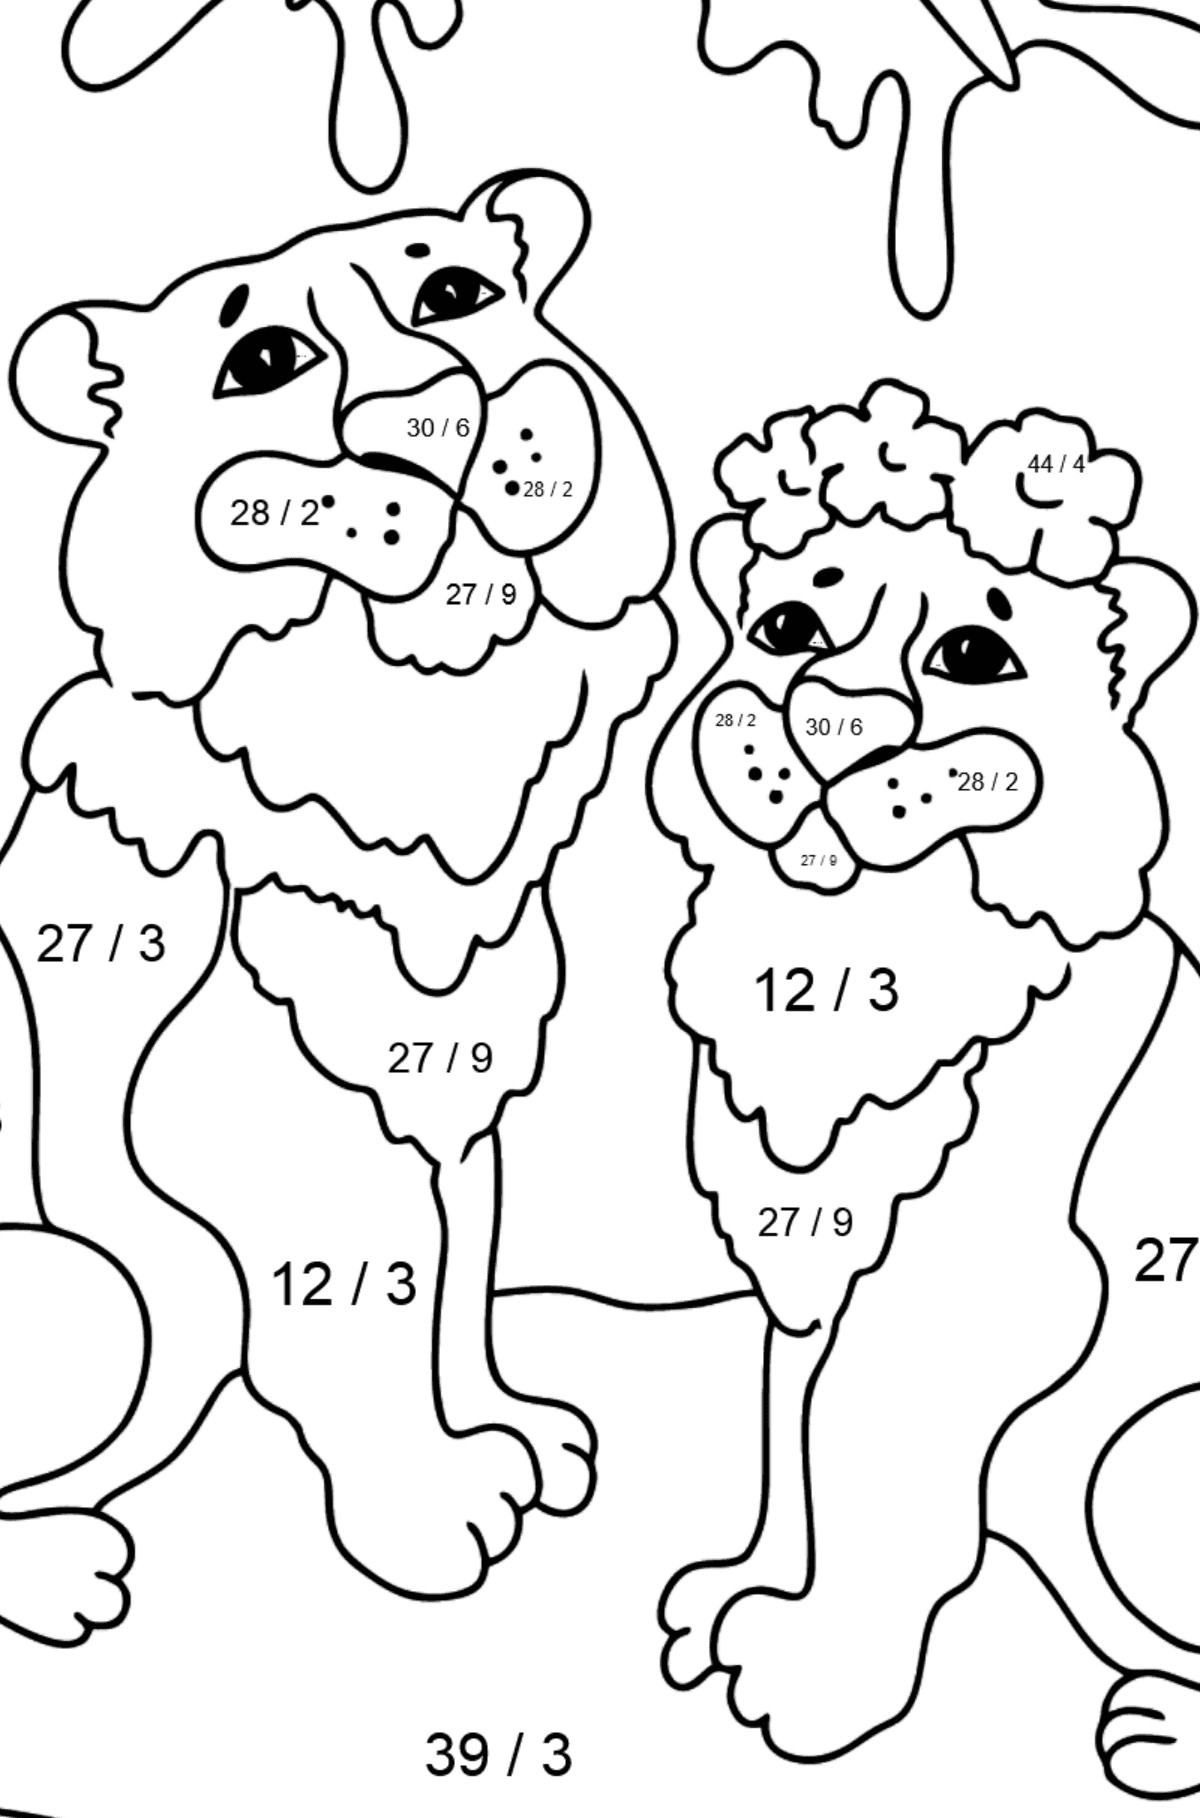 Coloring Page - Tigers with Butterflies - Math Coloring - Division for Kids